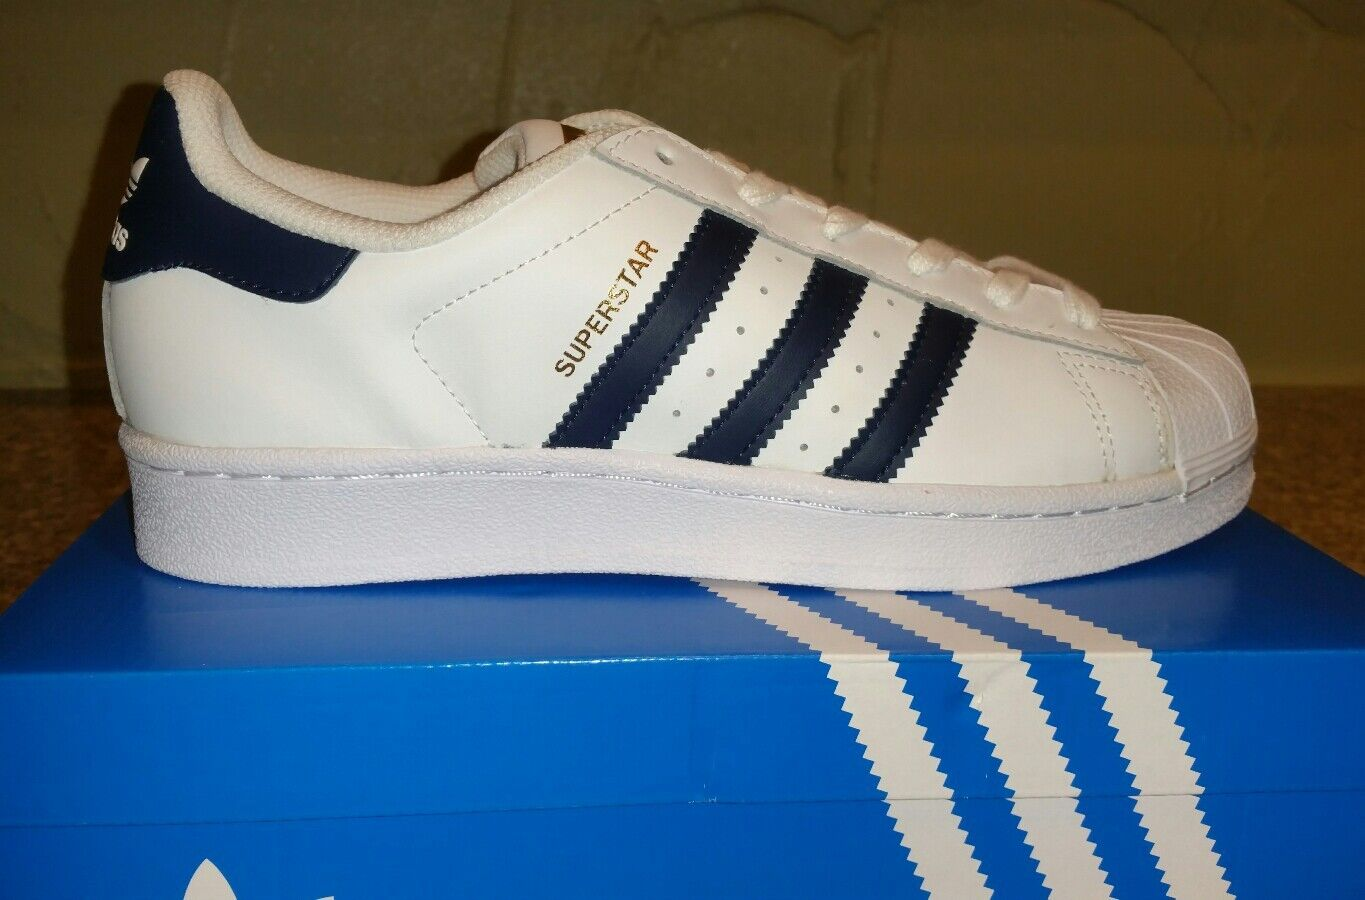 NEW ADIDAS SNEAKERS MEN'S ORIGINALS SUPERSTAR FOUNDATION CASUAL SNEAKERS ADIDAS SHOES SIZE 6 24f6f7